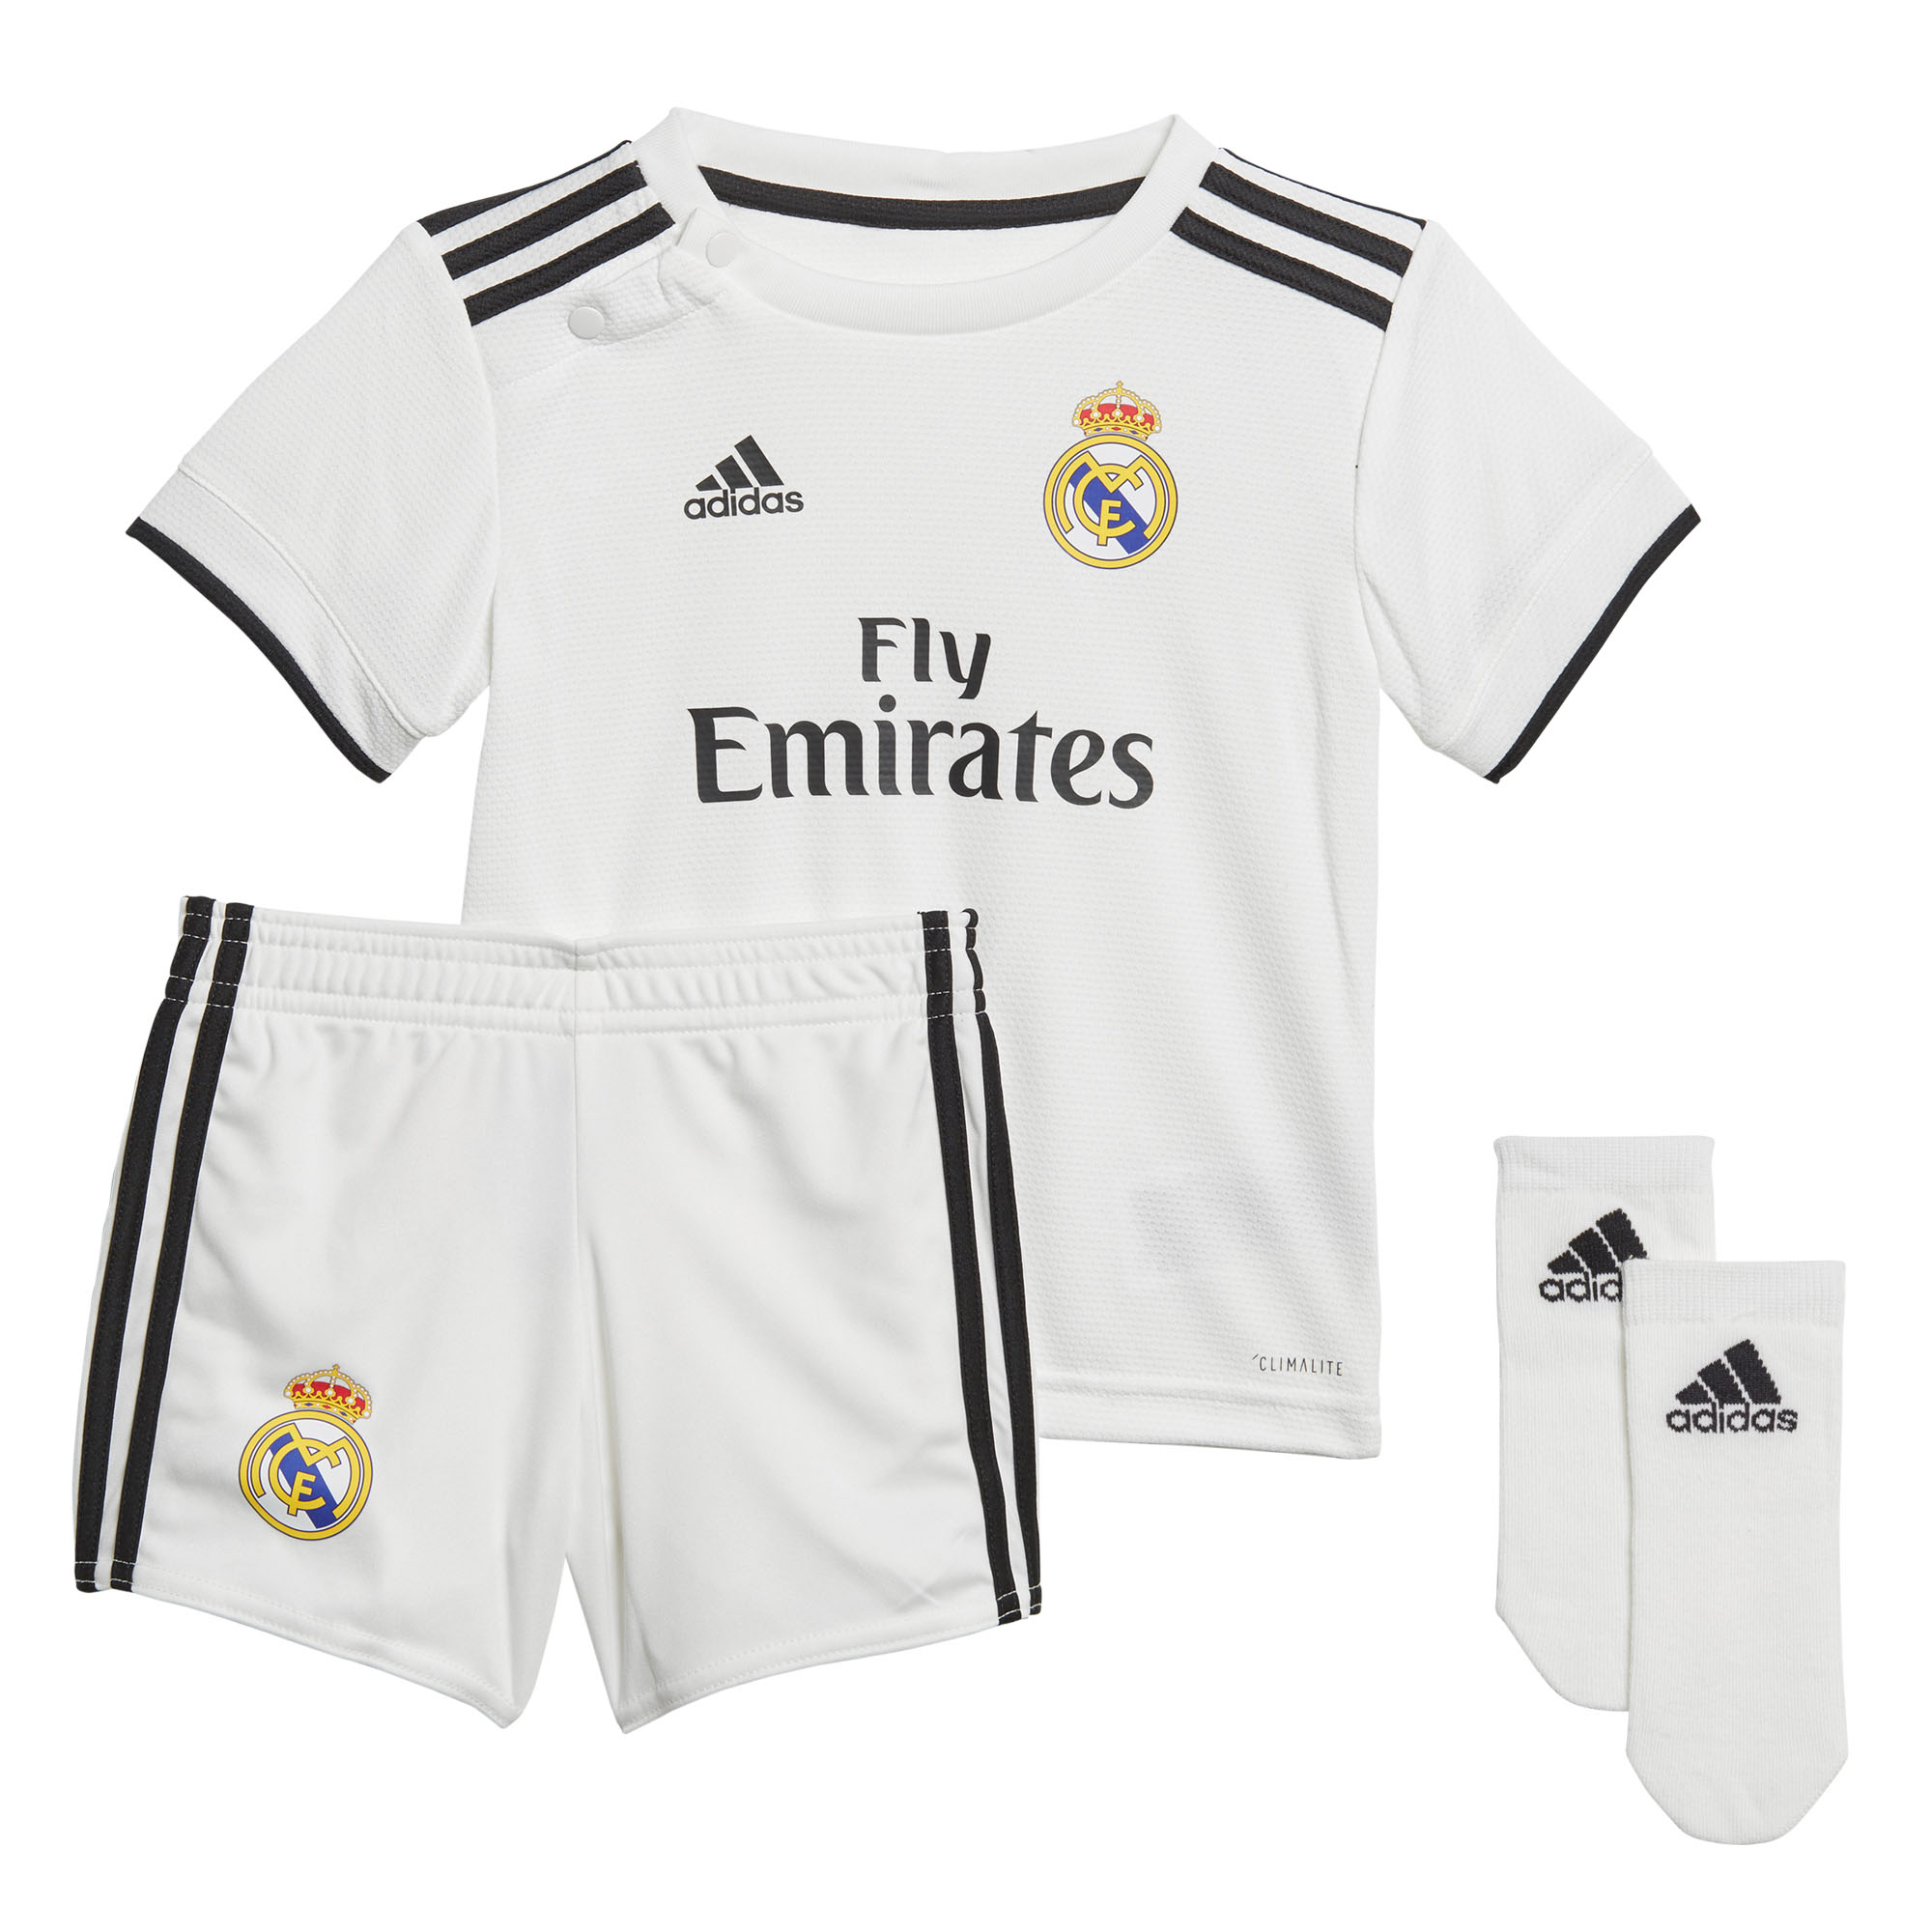 0c268e853 Details about adidas Real Madrid 2018 19 Infant Baby Kids Home Mini  Football Kit White